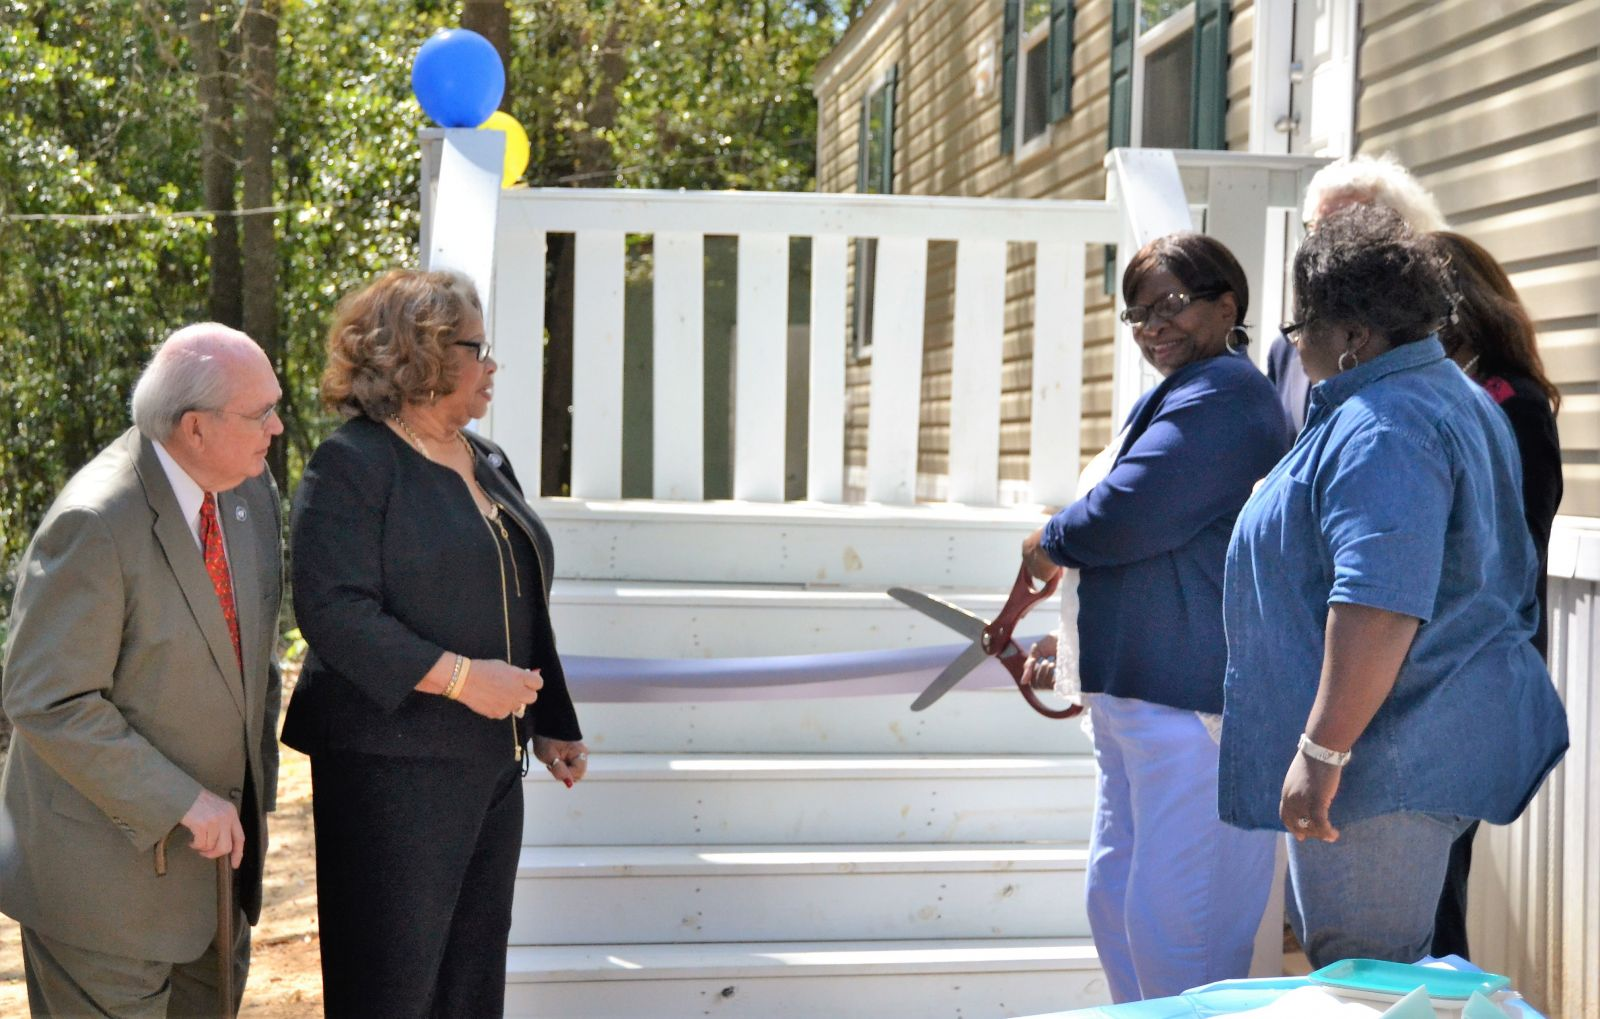 Judith Spry cuts the ribbon on her new home. She is joined by Richland County Council chairwoman Joyce Dickerson along with council members Greg Pearce, Yvonne McBride and Jim Manning. (Photo/Travis Boland)